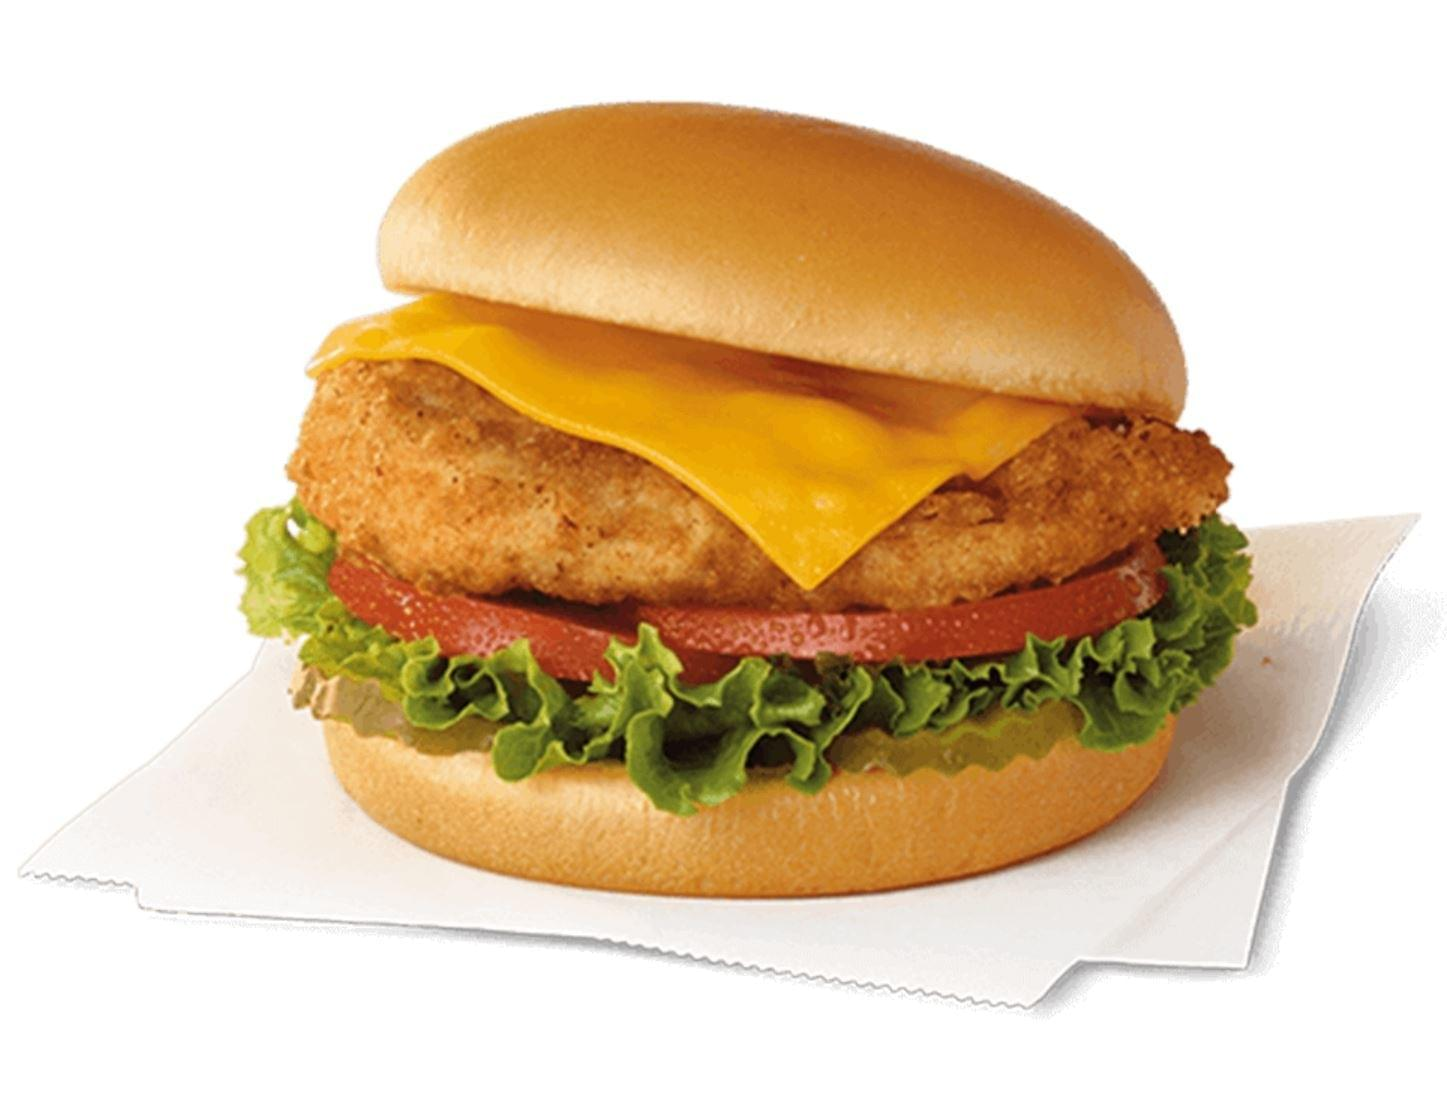 Chick-fil-A Chicken Deluxe Sandwich Nutrition Facts